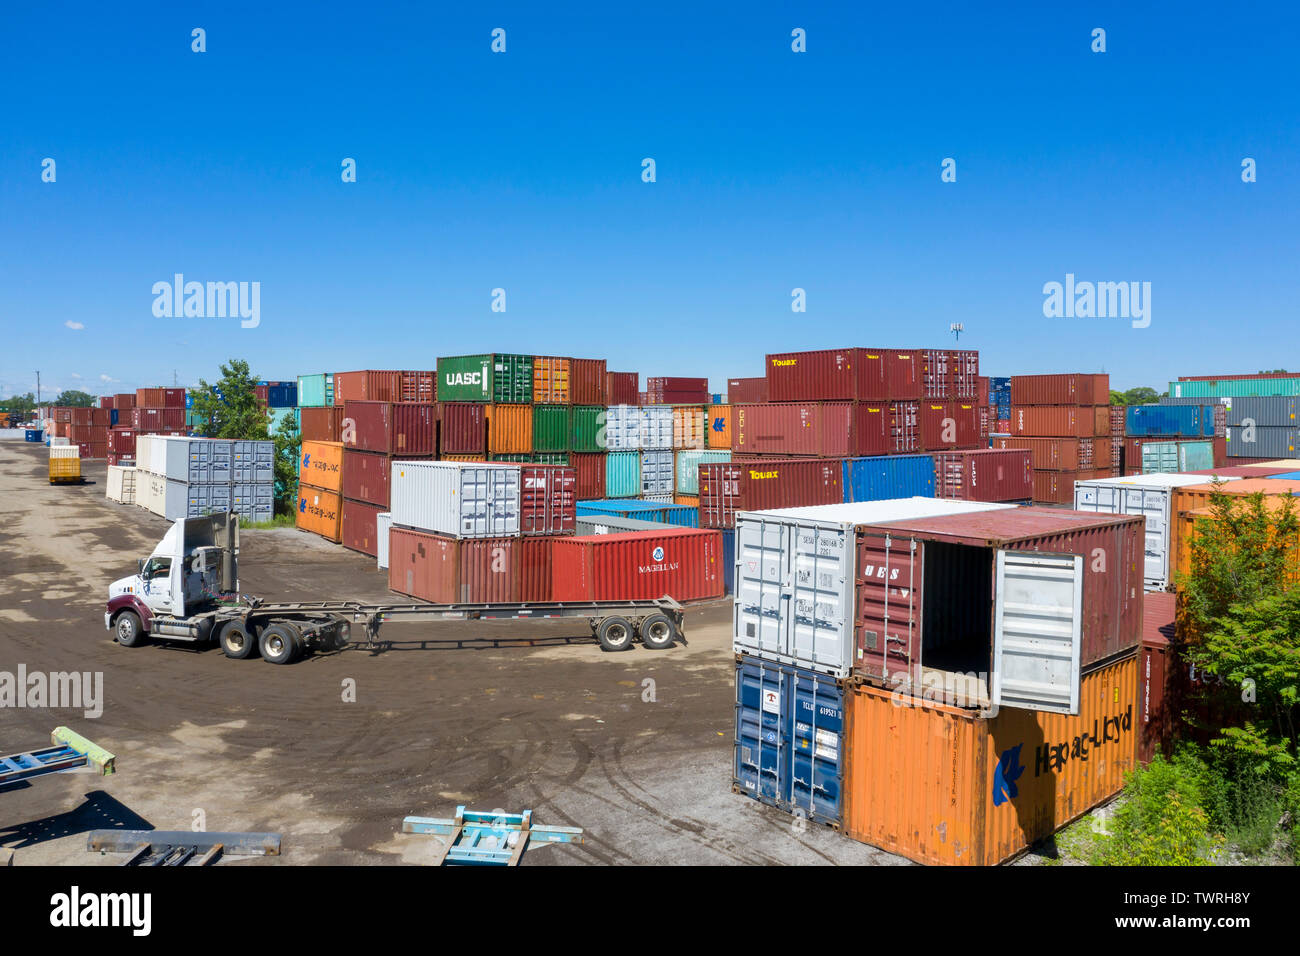 Detroit, Michigan - Shipping containers at ContainerPort Group's trucking terminal and container yard. The facility is on the site of the demolished G - Stock Image